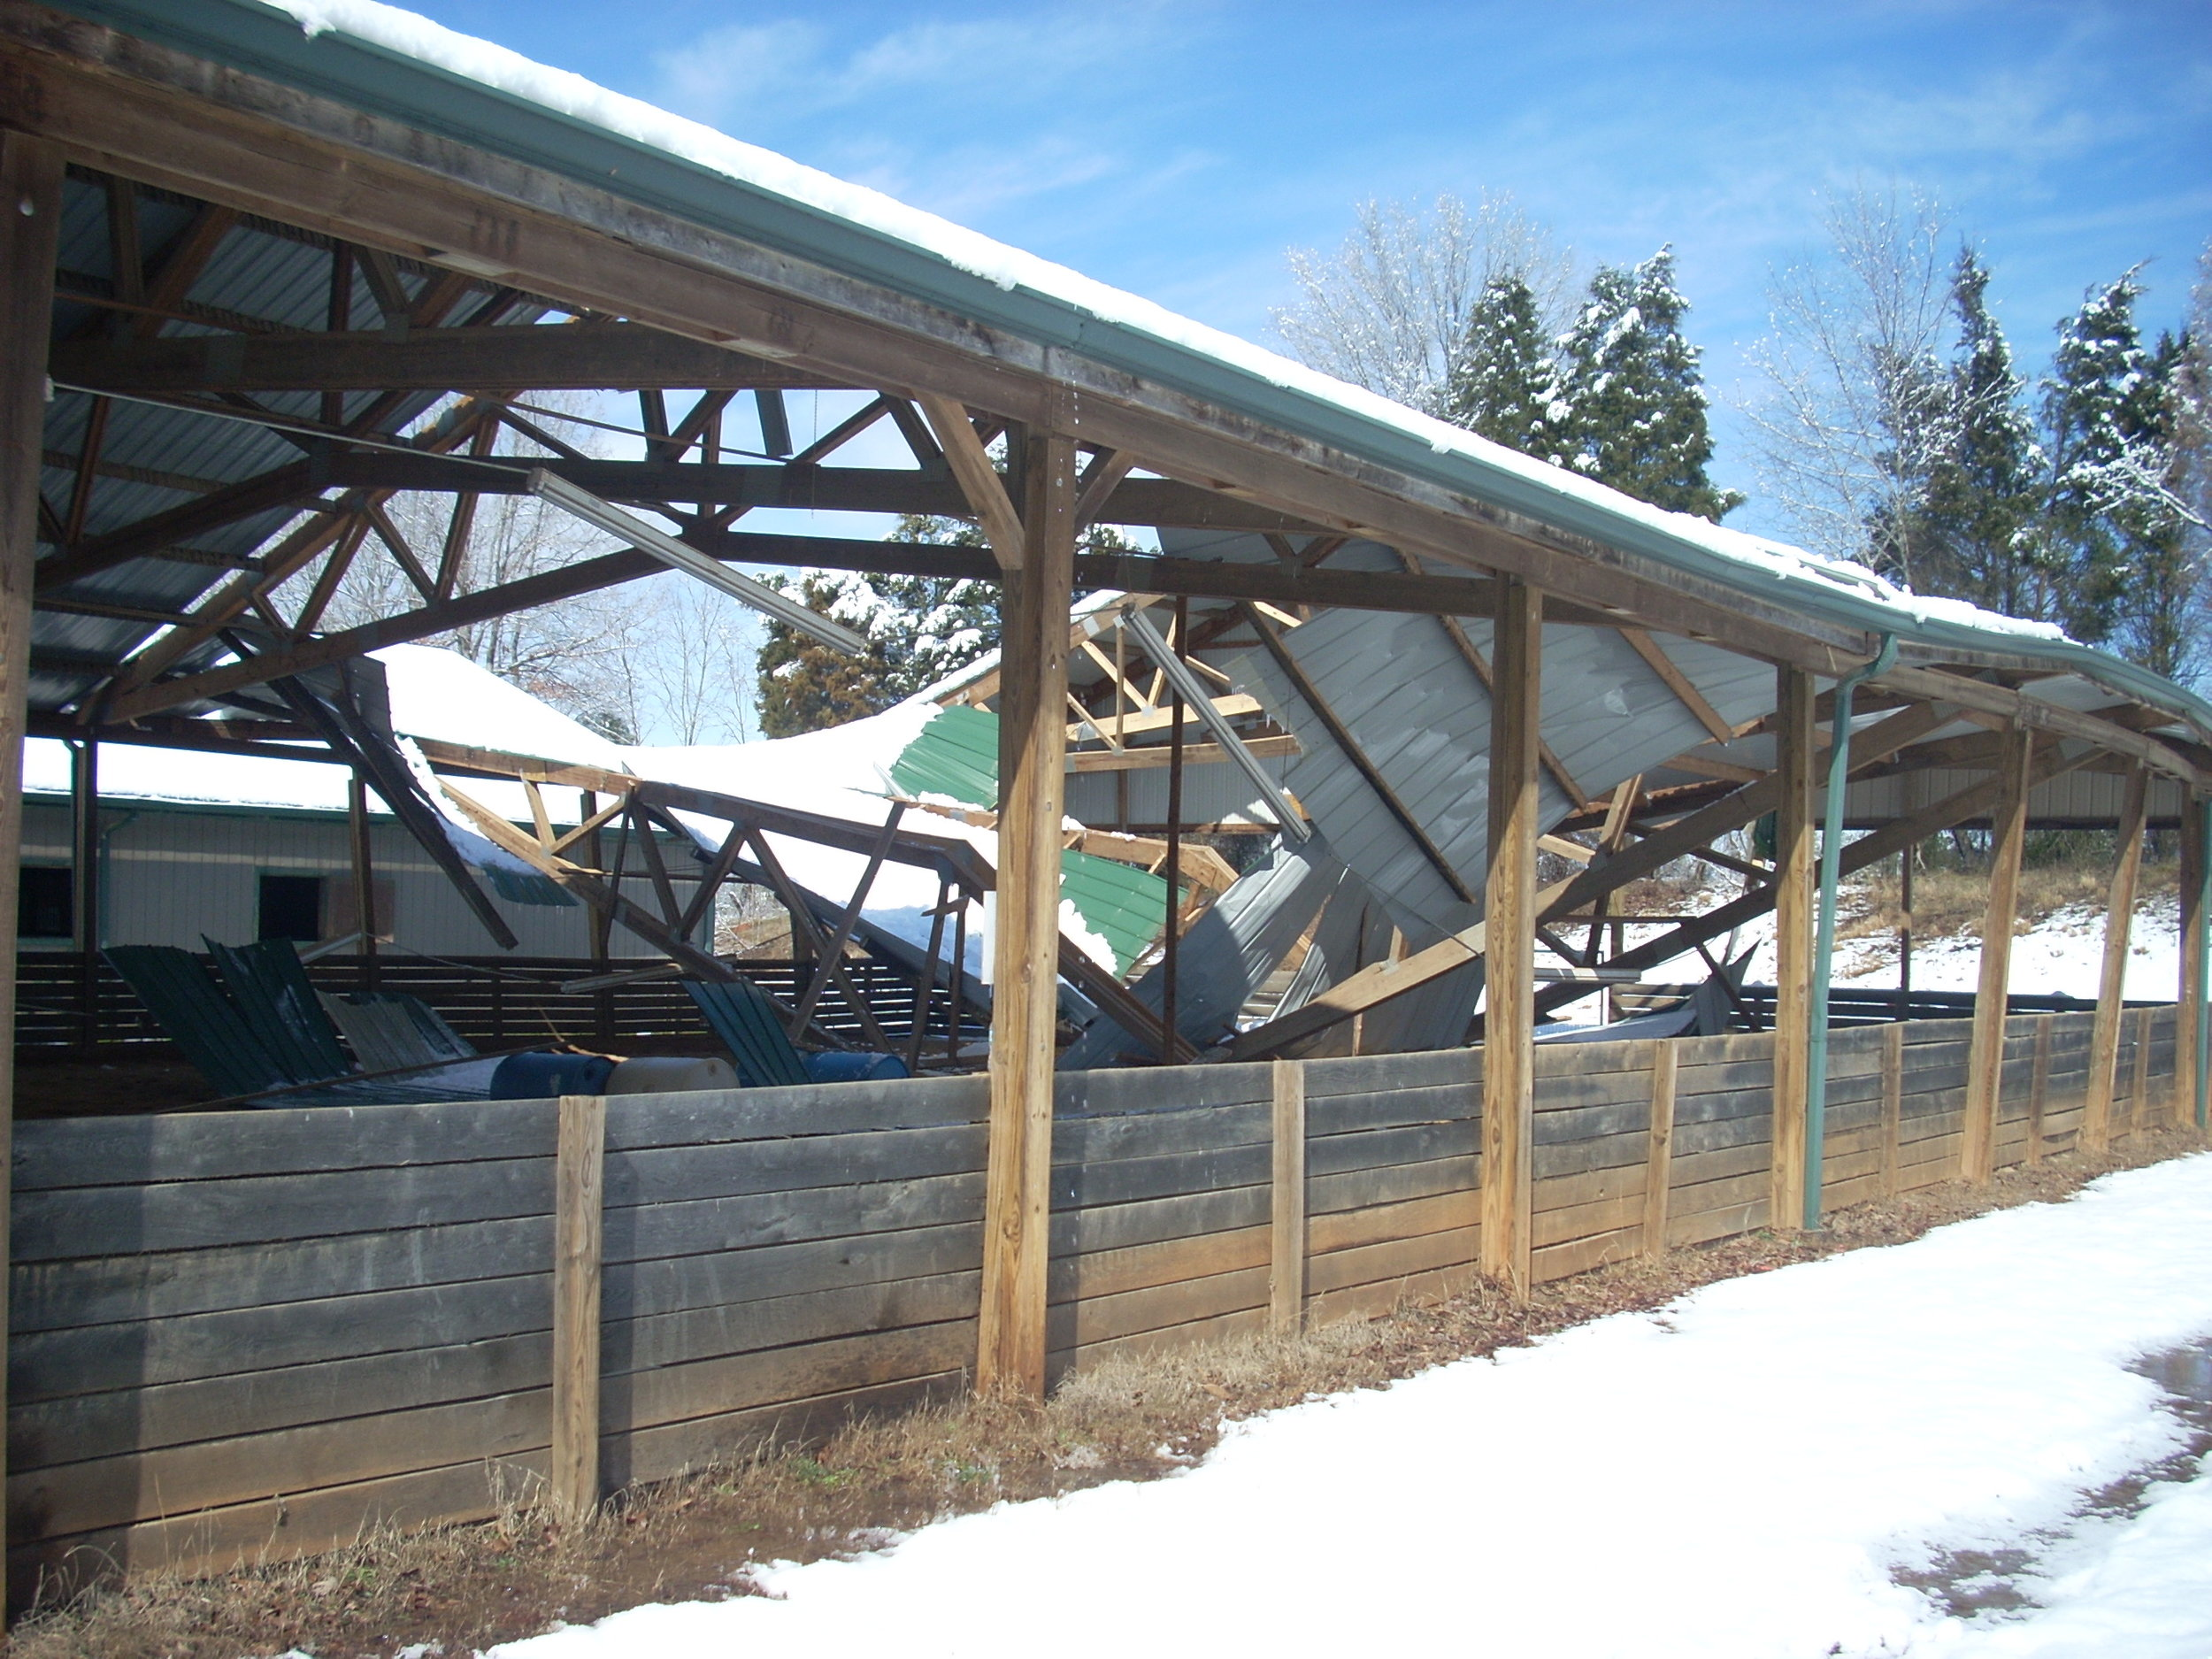 Roof collapse in the Large Covered Arena during a snow because arenas were not constructed to code before we moved in.